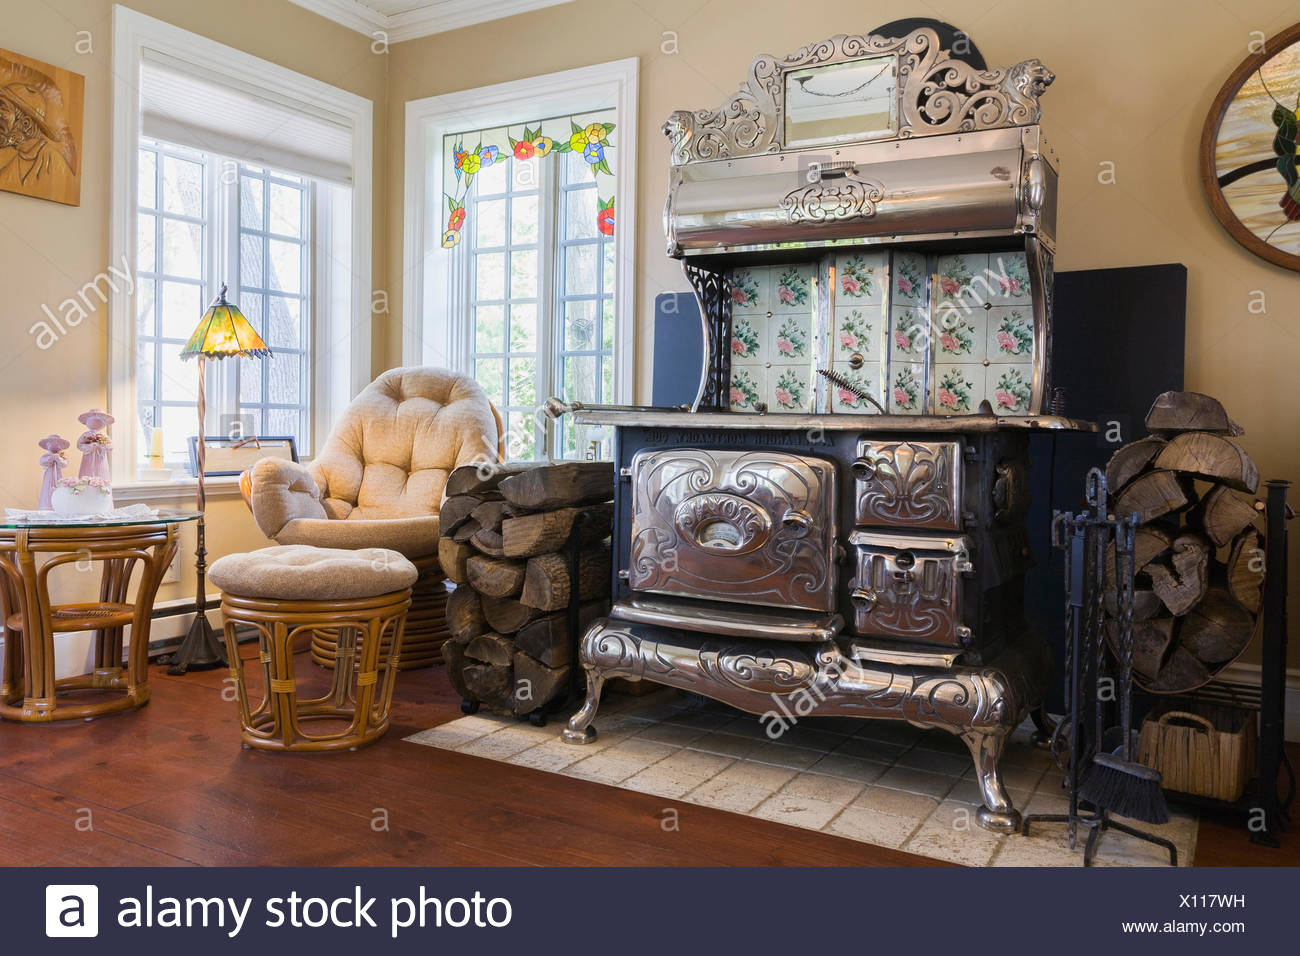 Antique black cast iron and chrome Royal wood burning cook stove in the family room inside an old reconstructed 1886 Canadiana cottage style residential home, Quebec, Canada - Stock Image